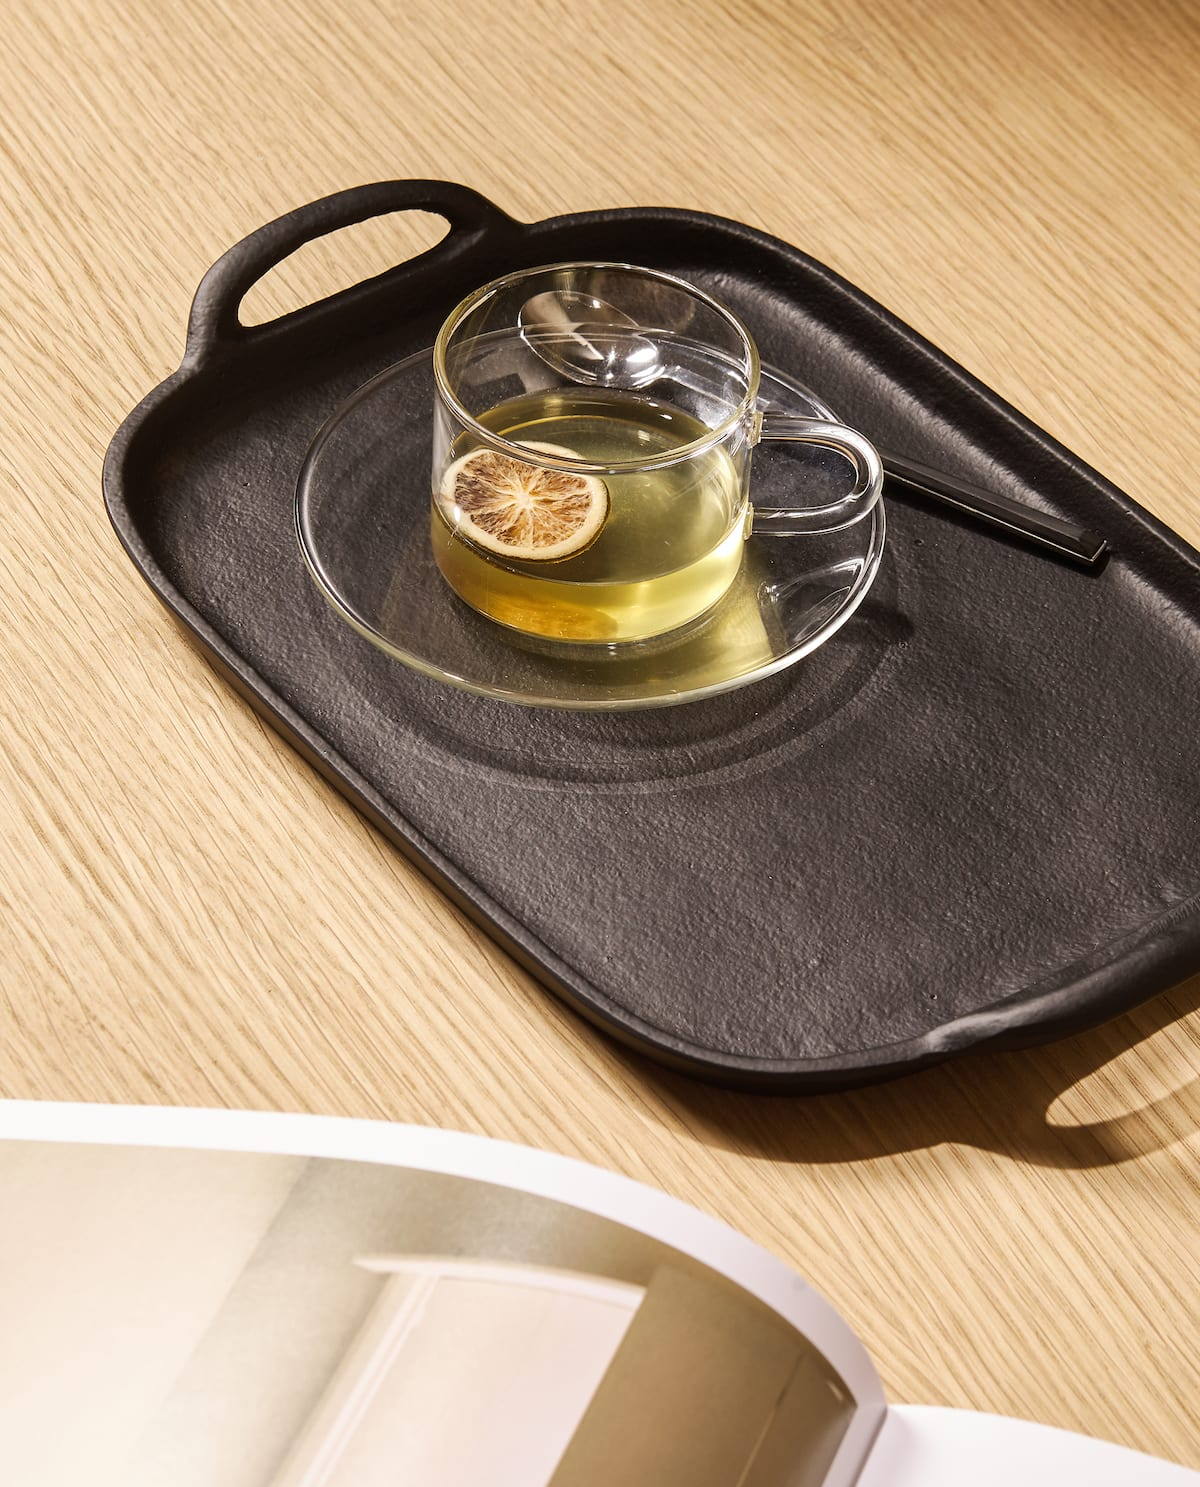 Metal tray with a cup of tea